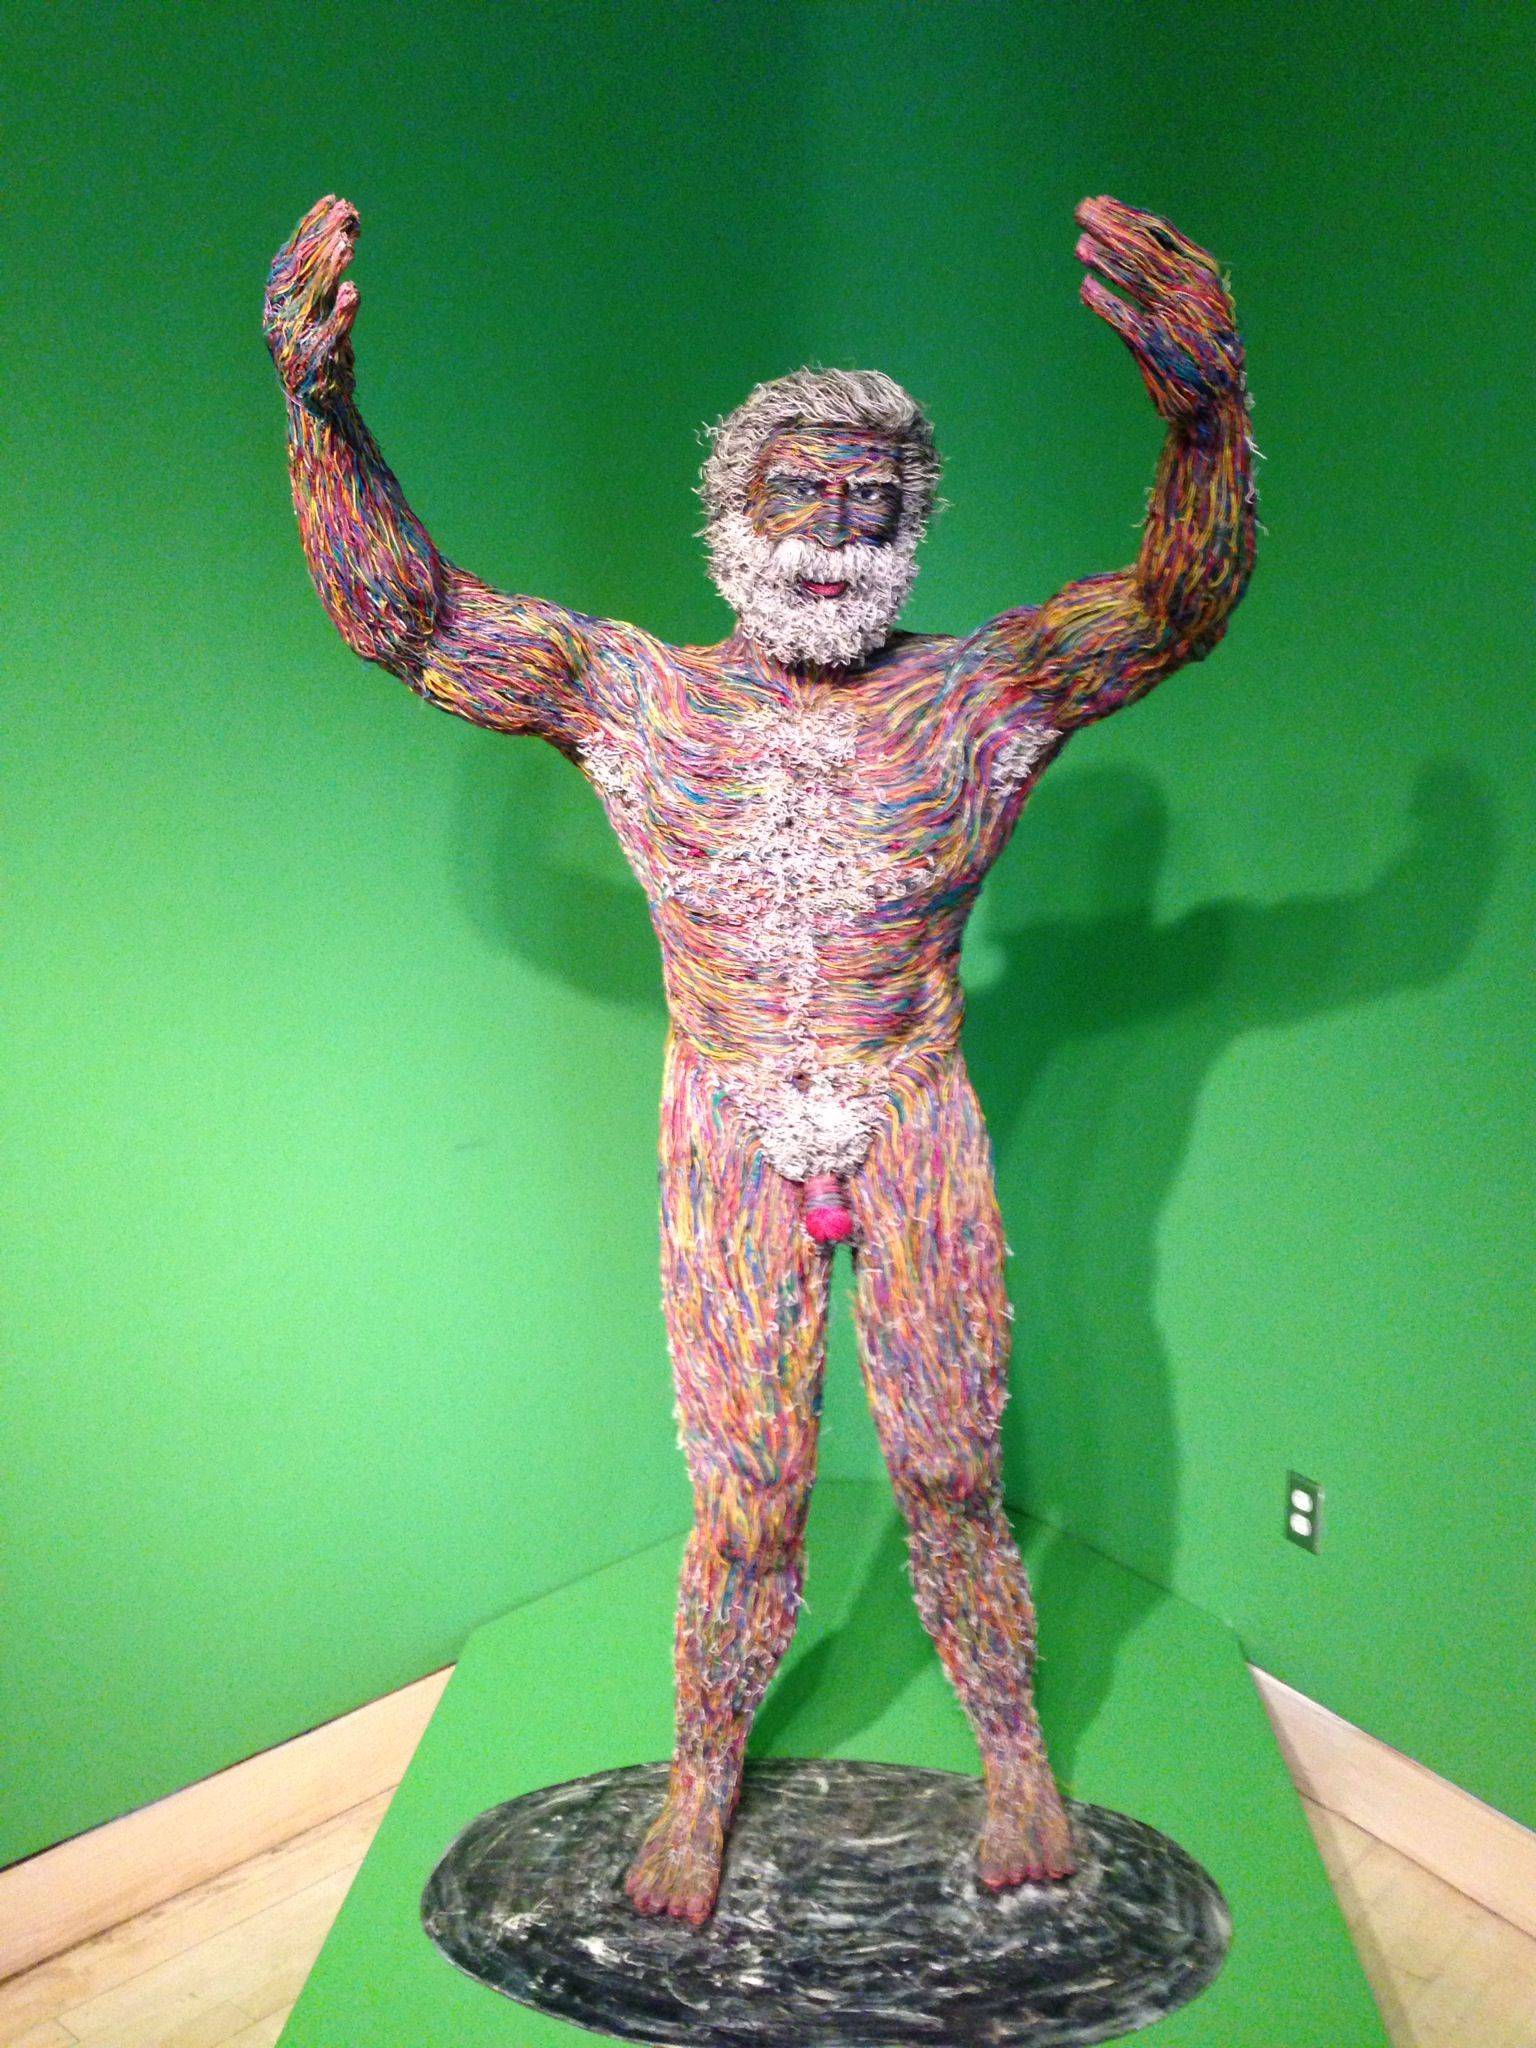 Man Made From Recycled Phone Wire Museum Of Visionary Art Pcb Sculptures Artist Upcycles Old Circuit Boards Into Baltimore